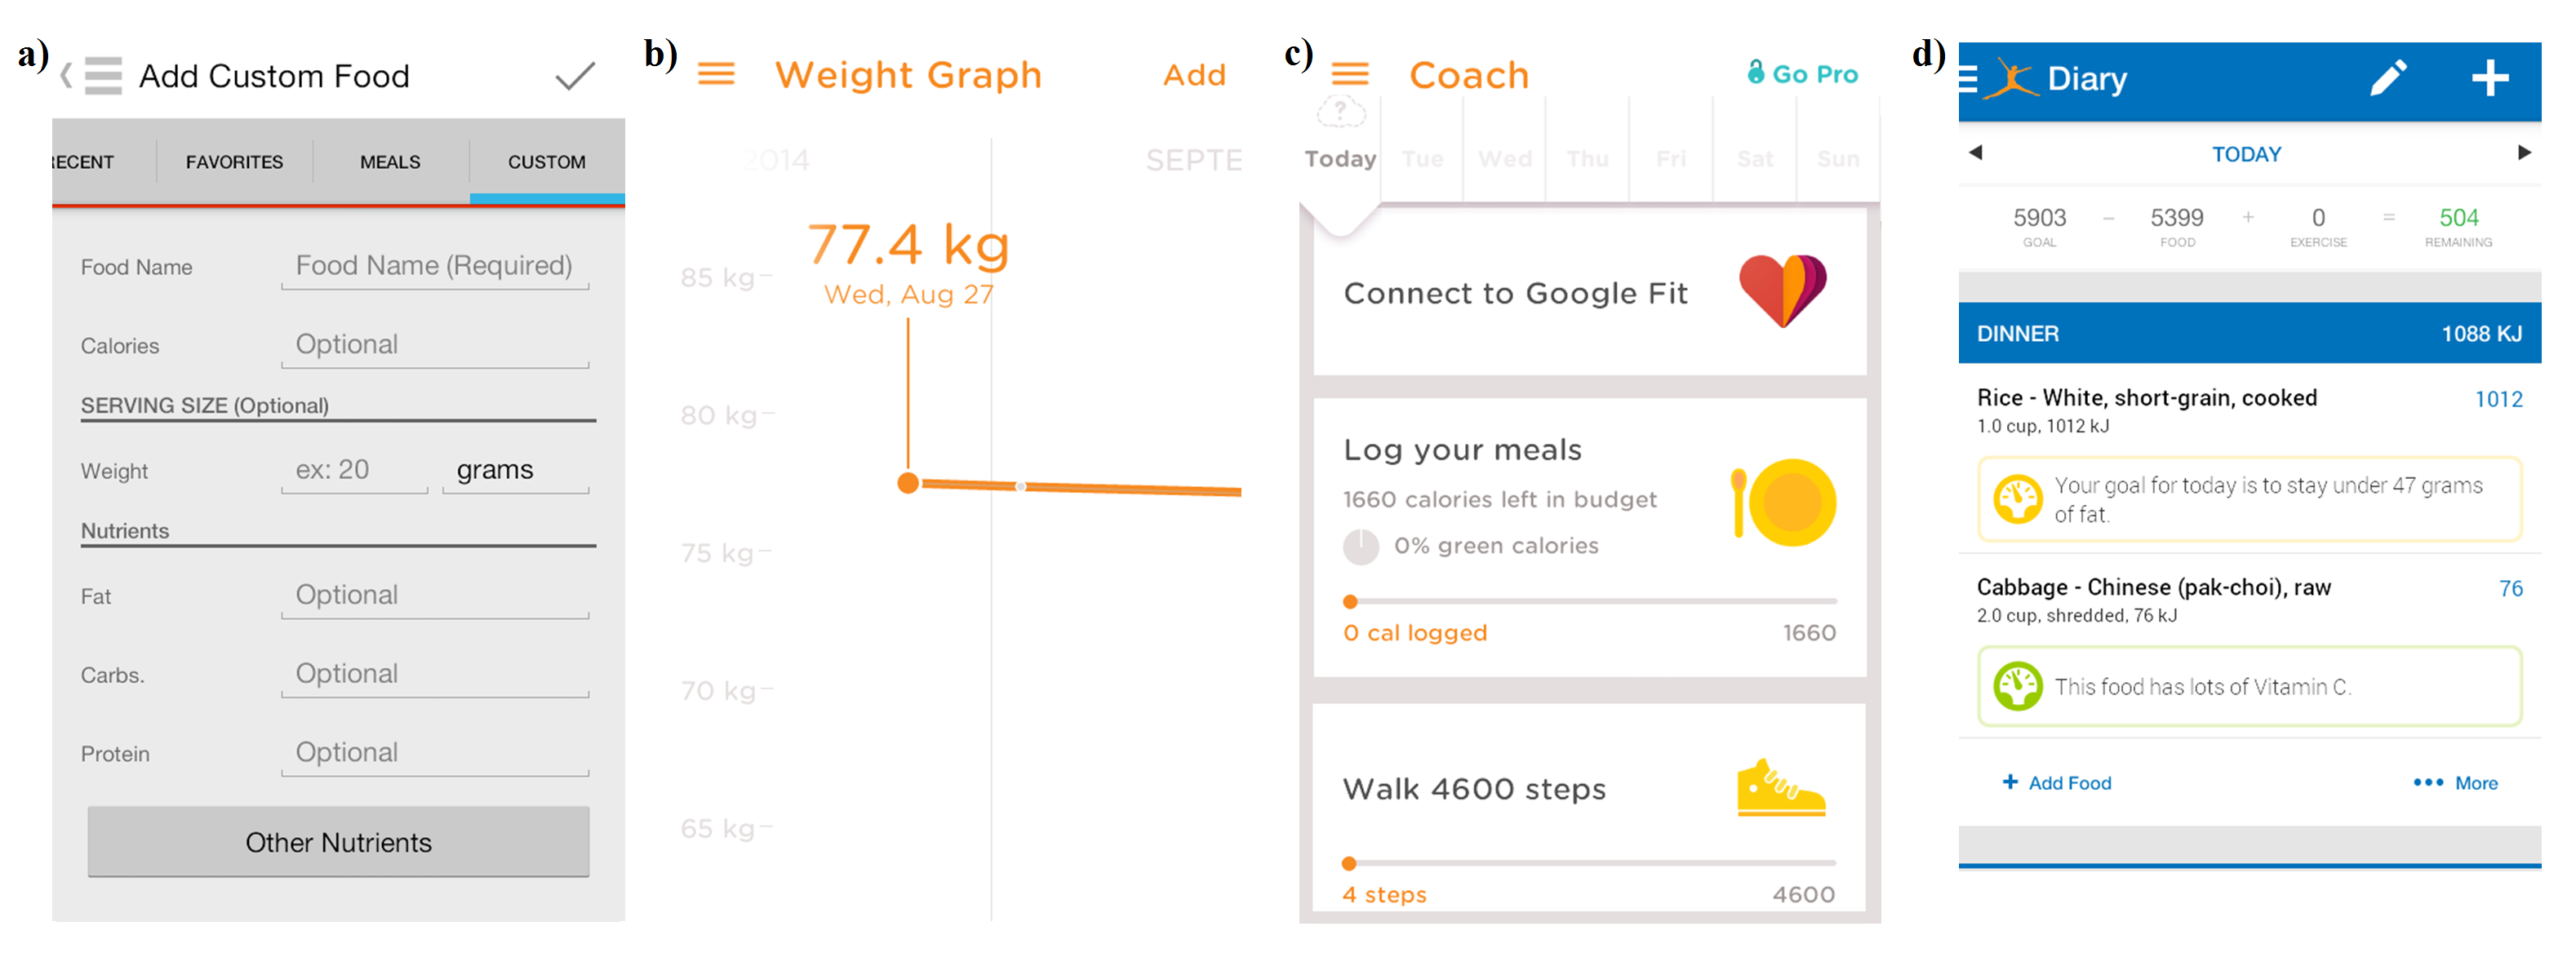 Jmu The Most Popular Smartphone Apps For Weight Loss A Quality